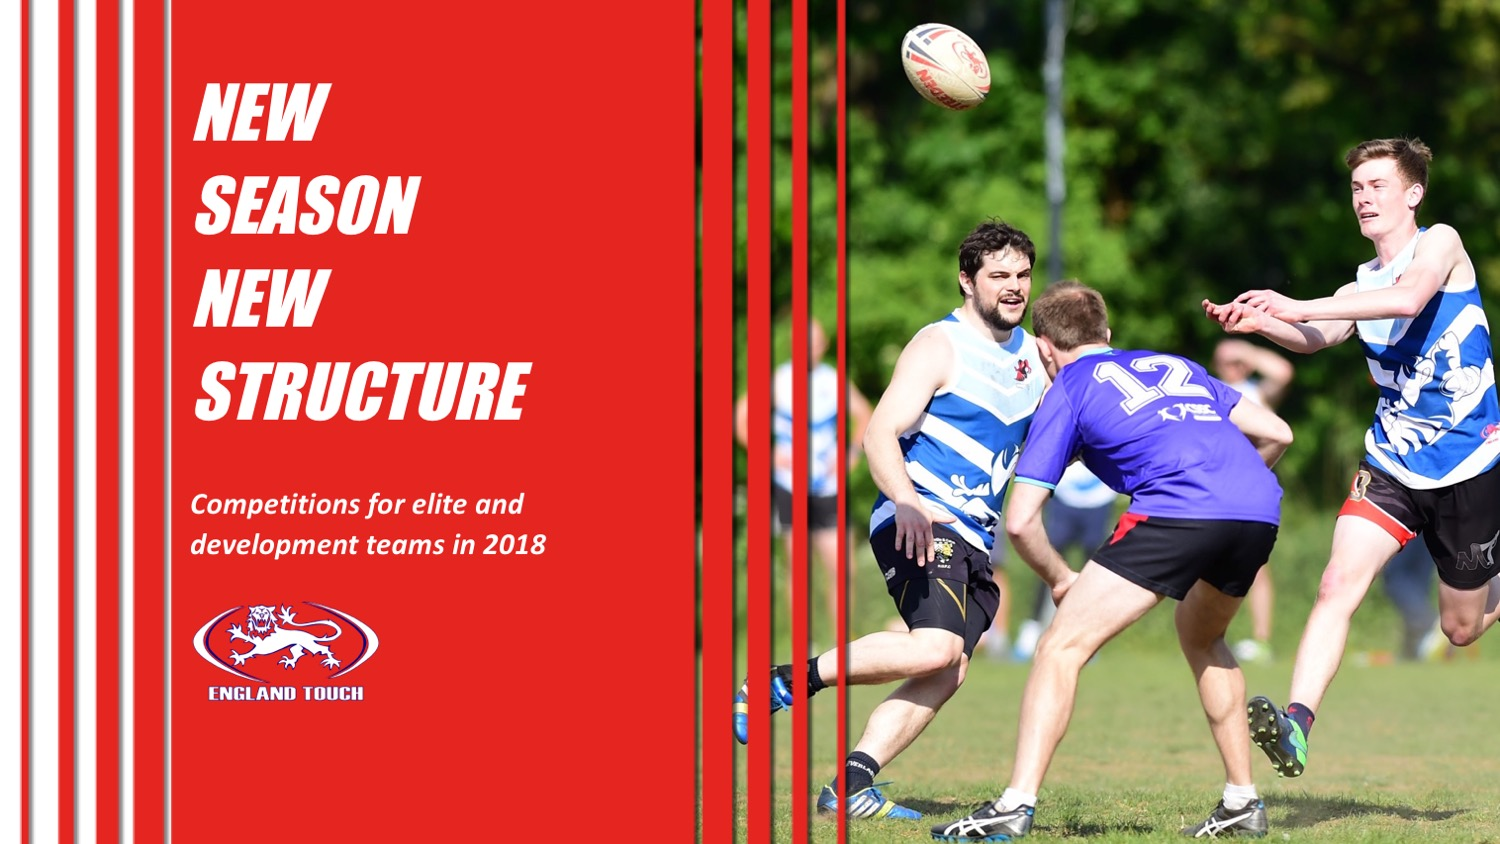 England Touch announces new competition structure for 2018 (1)